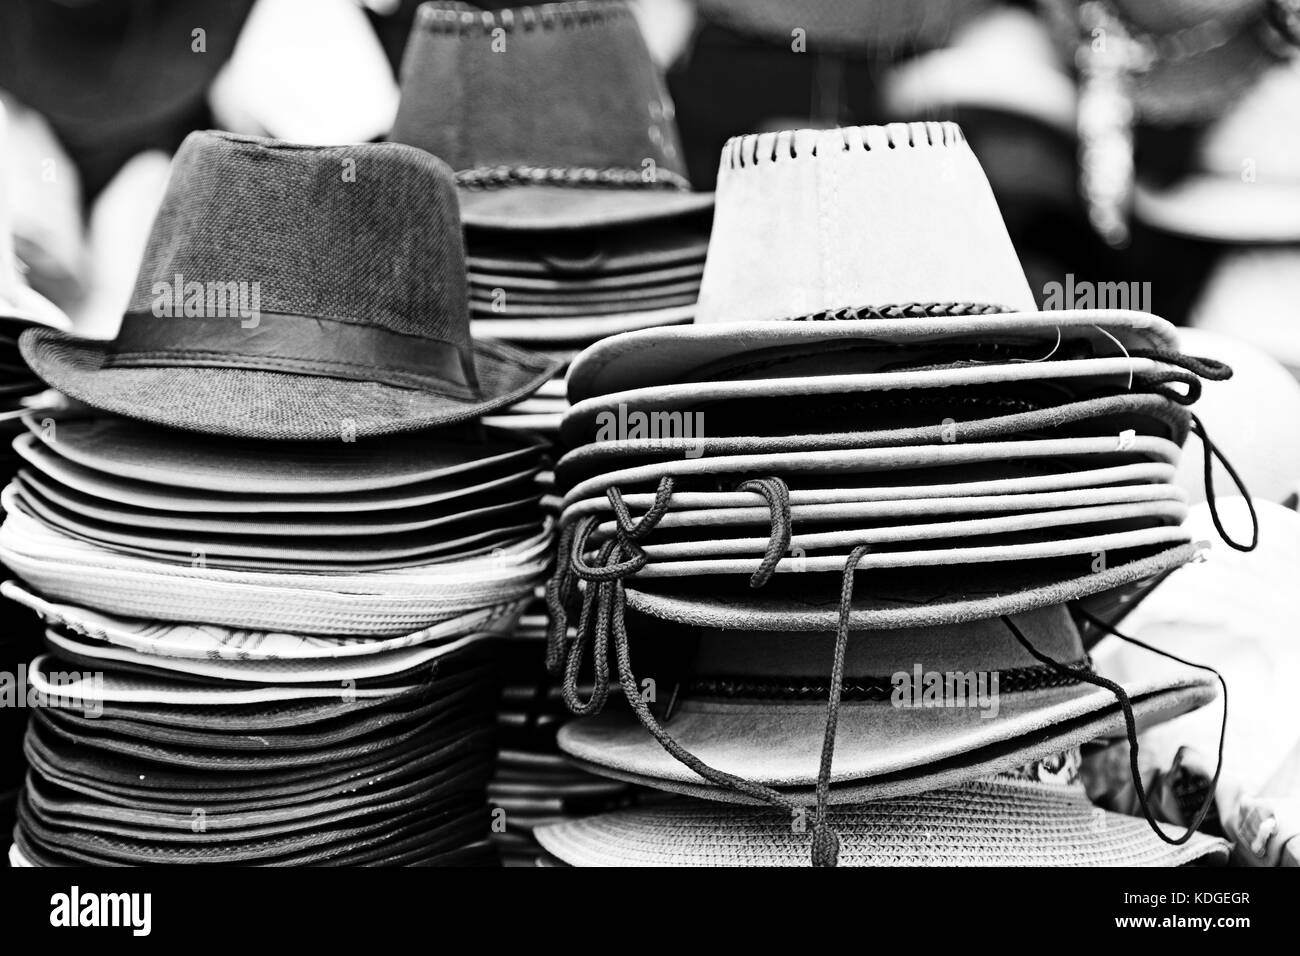 in a old market lots of colorated hats  like background clothes - Stock Image